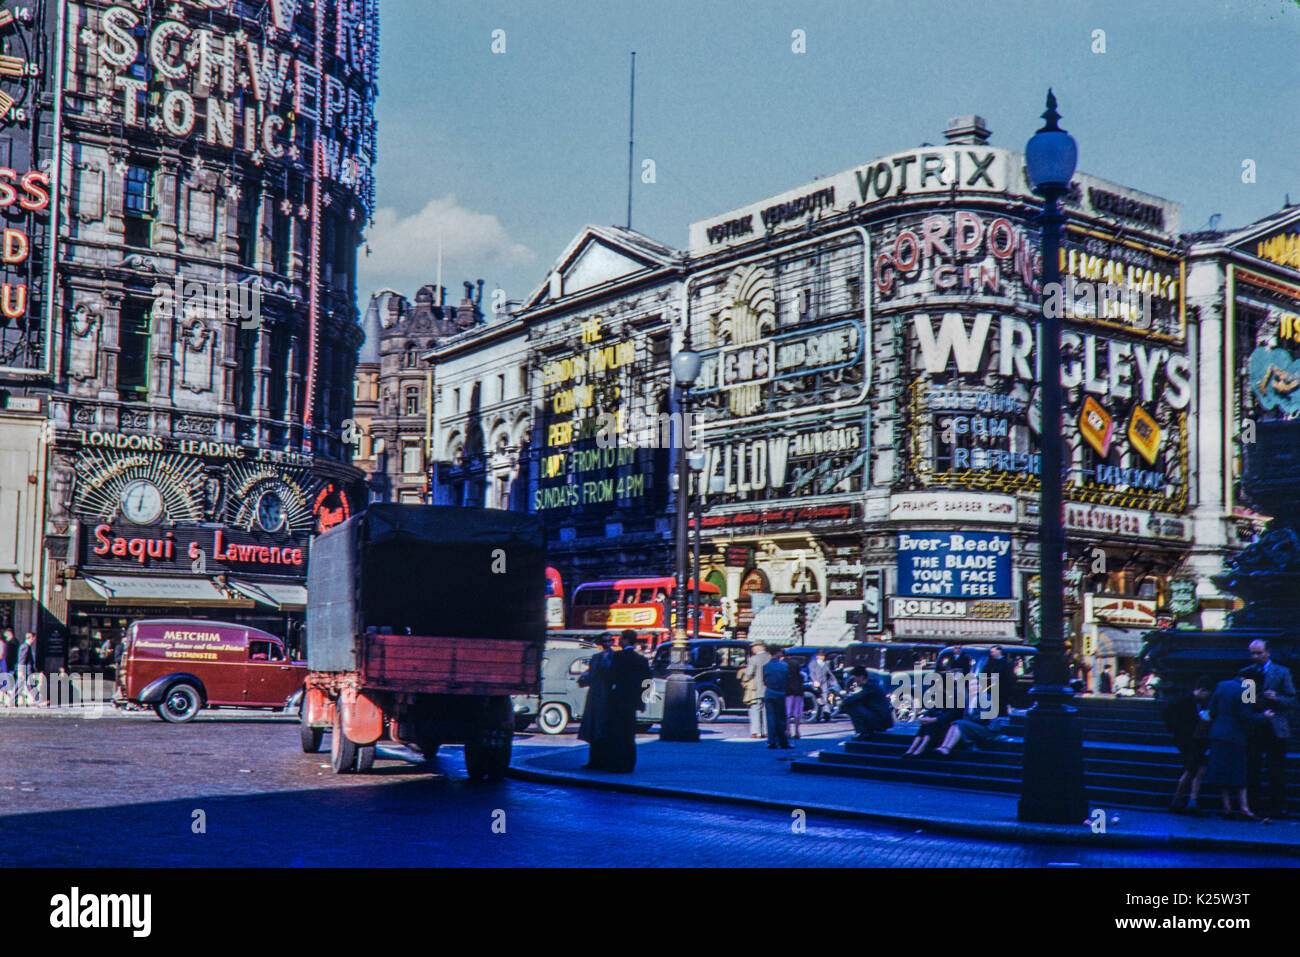 Piccadilly Circus, London 1950s - Stock Image